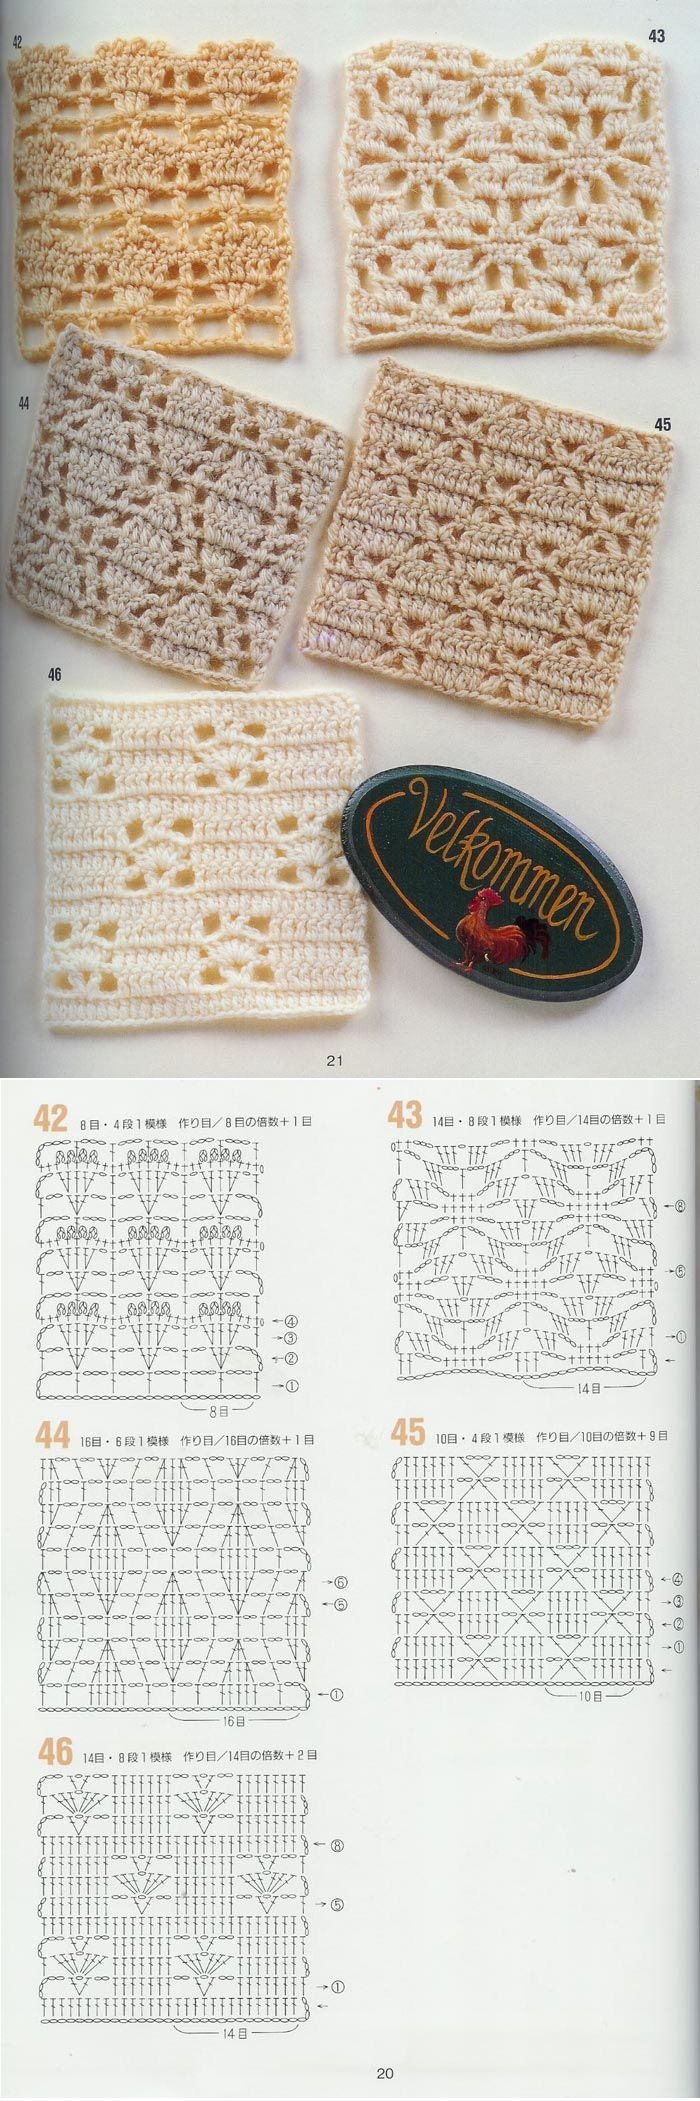 crochet stitches 1